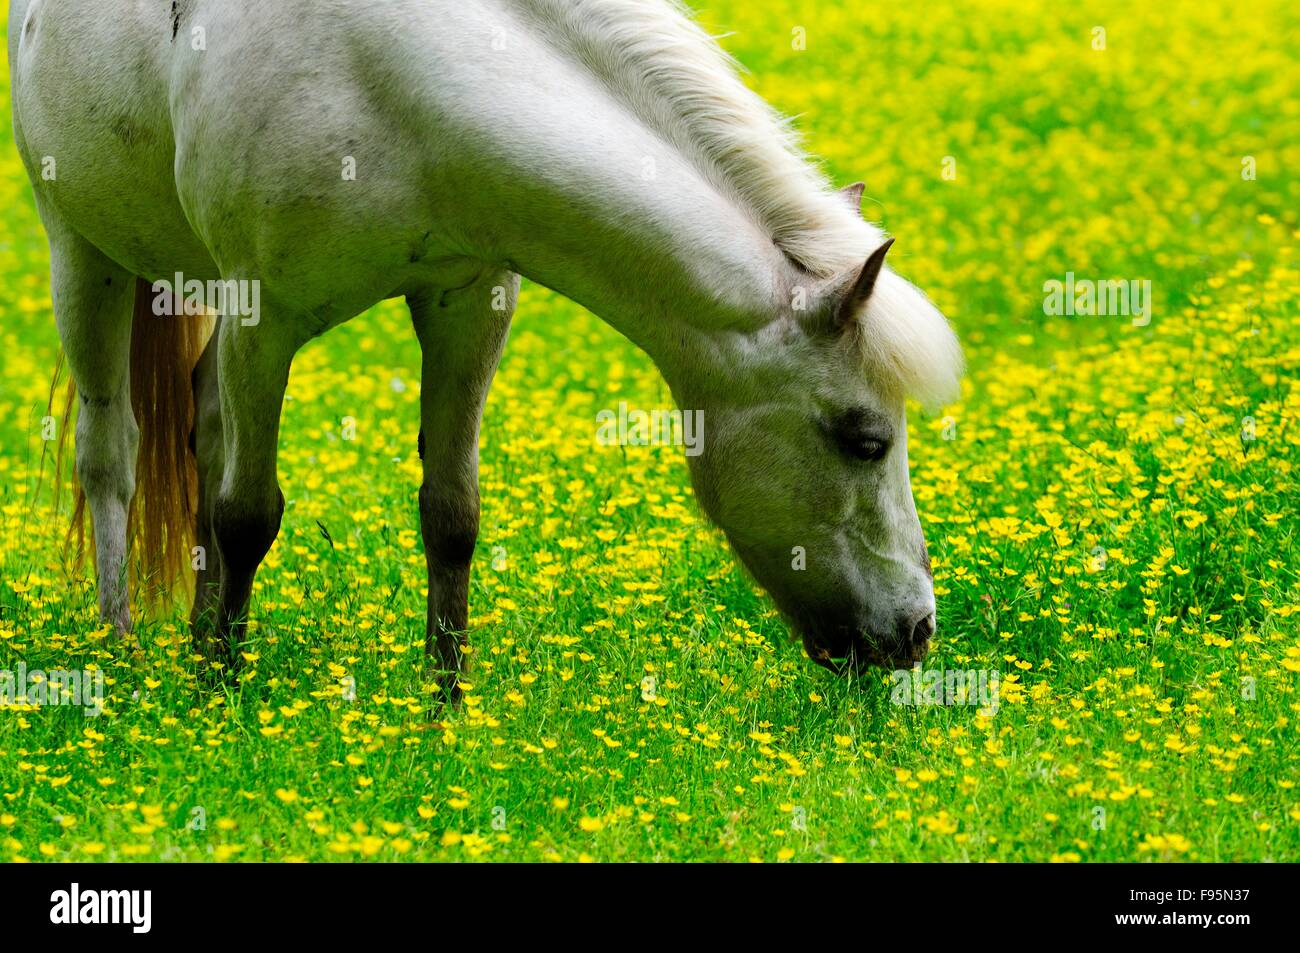 Welsh pony in a field of buttercups. - Stock Image